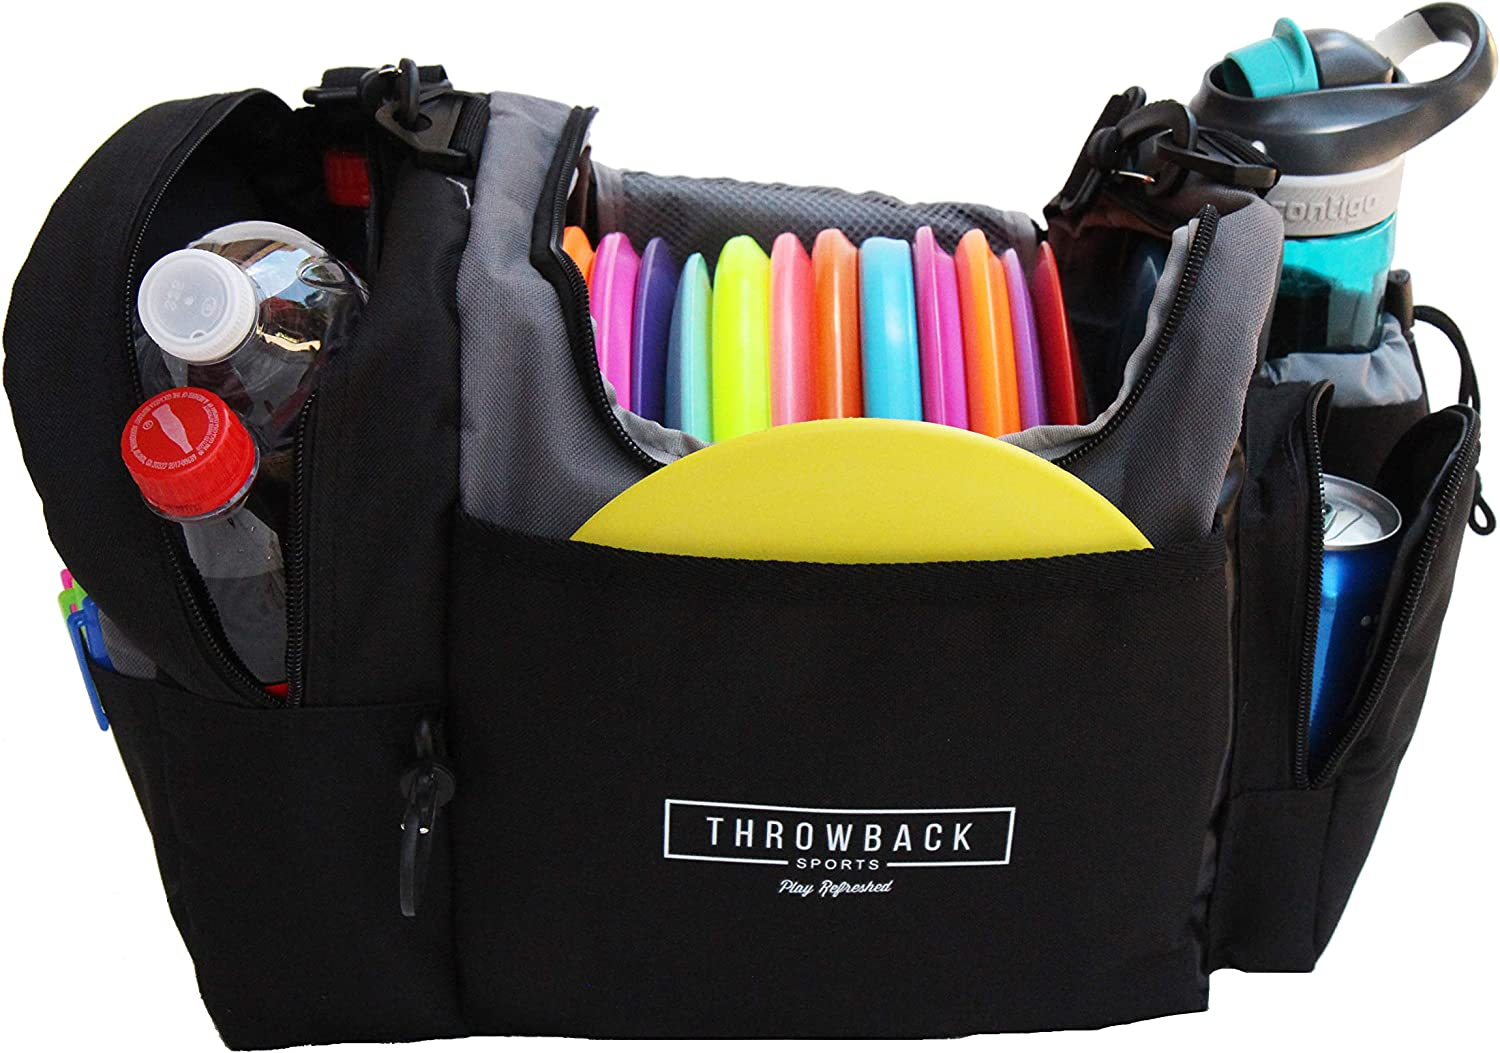 Frisbee Disc Golf Bag with Cooler